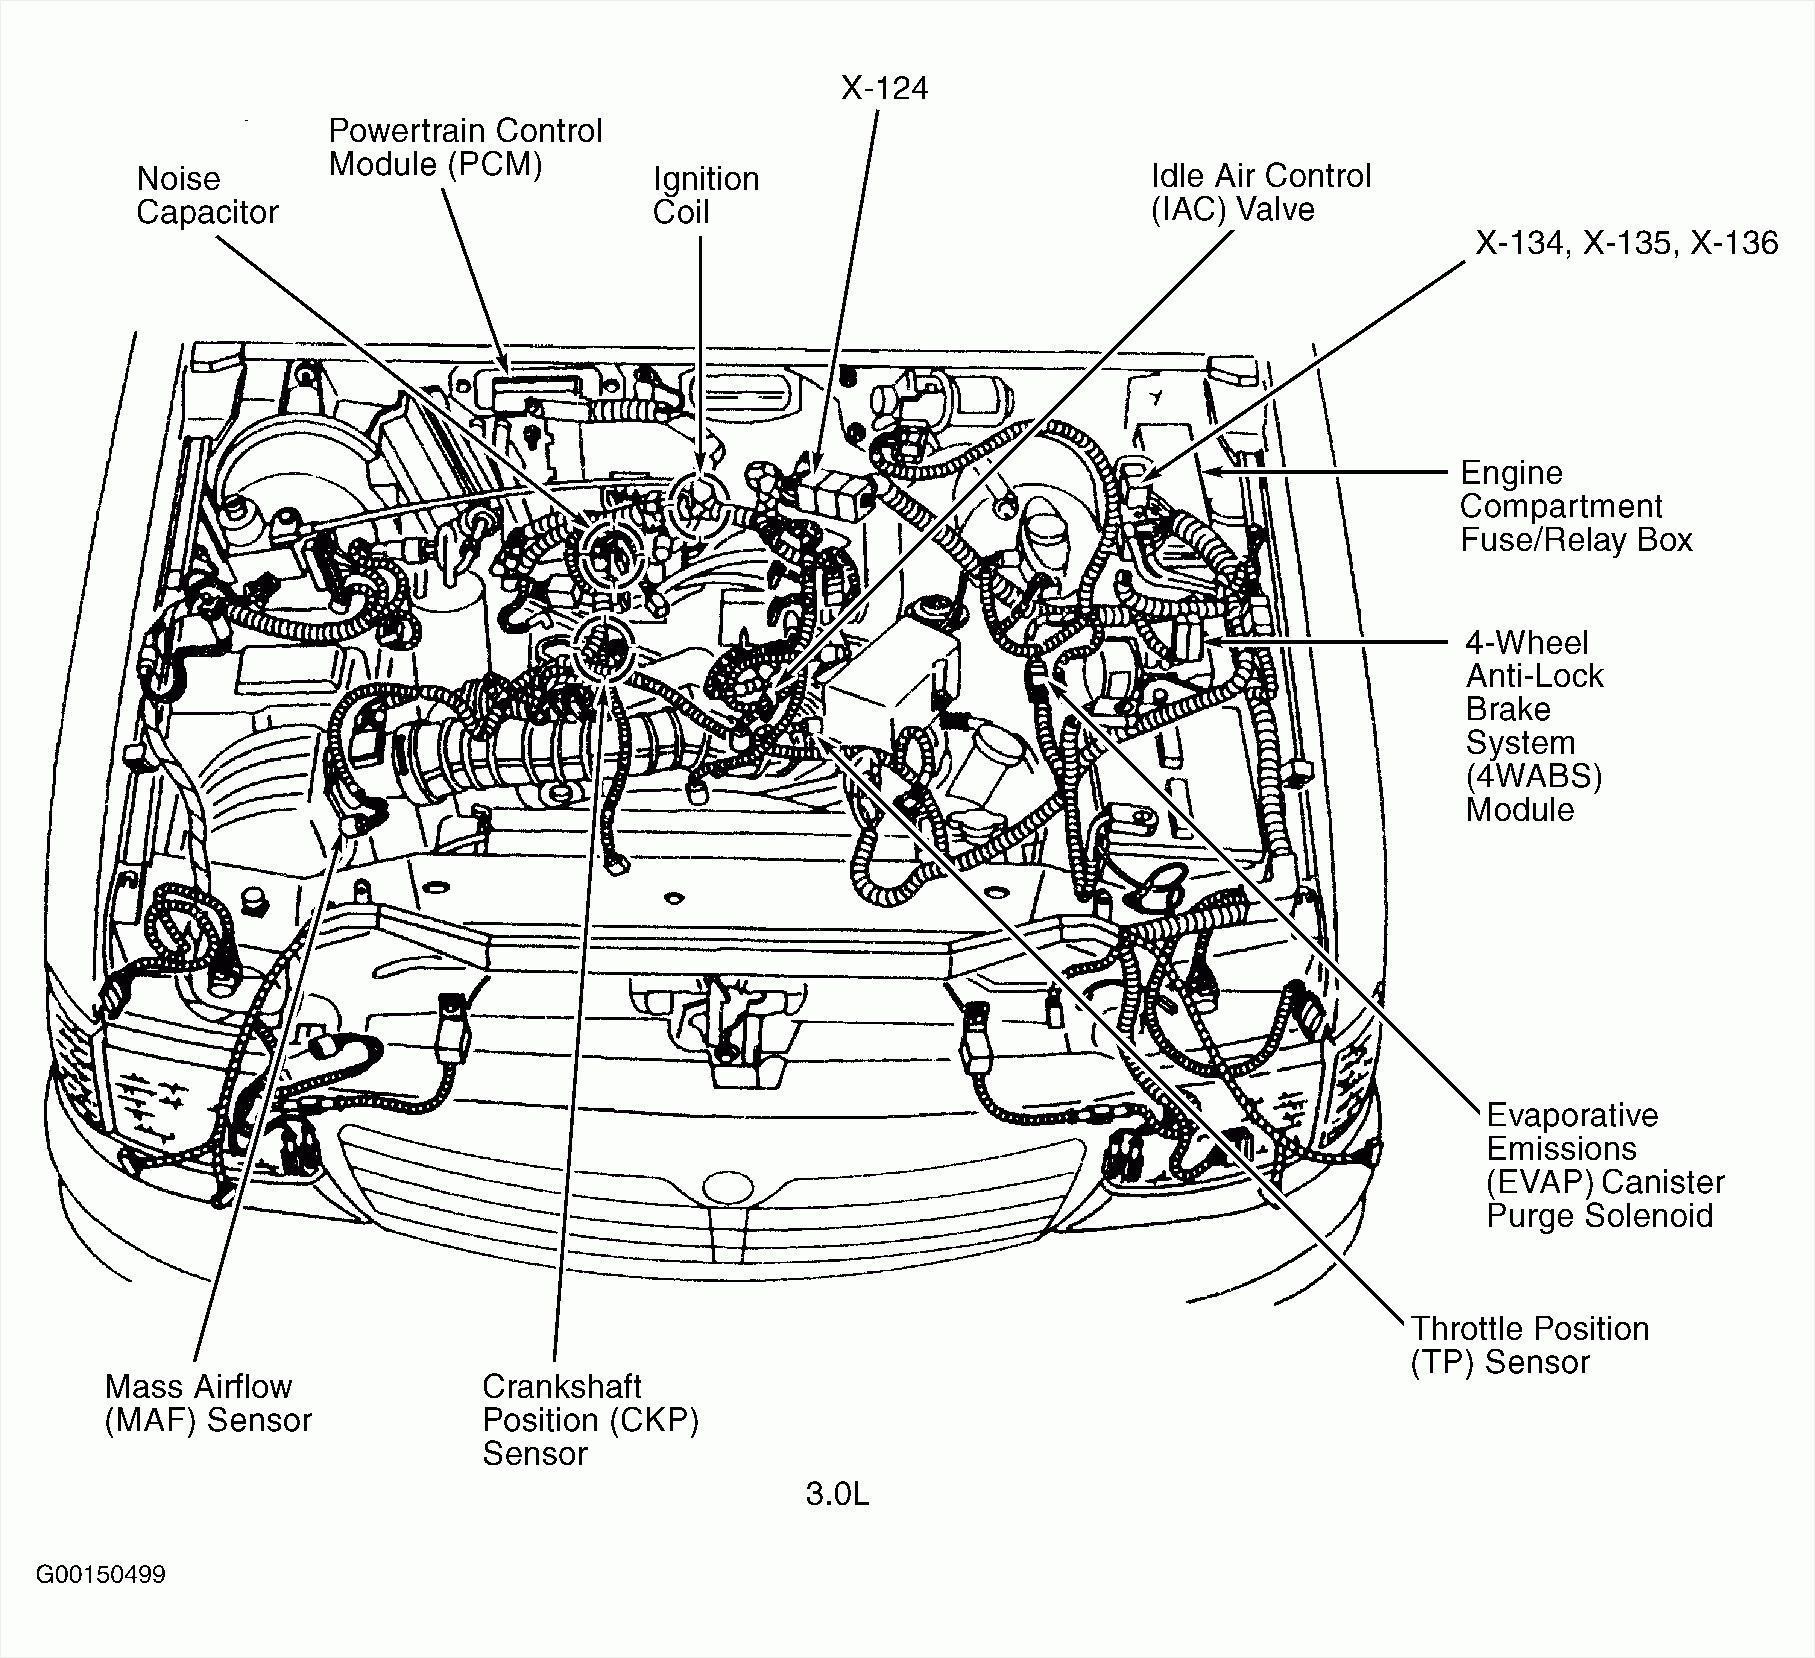 Mazda Protege Engine Diagram 2004 Mazda 6 V6 Engine Diagram Wiring Diagrams Of Mazda Protege Engine Diagram 1989 Mazda 323 Wiring Diagram Wiring Diagrams